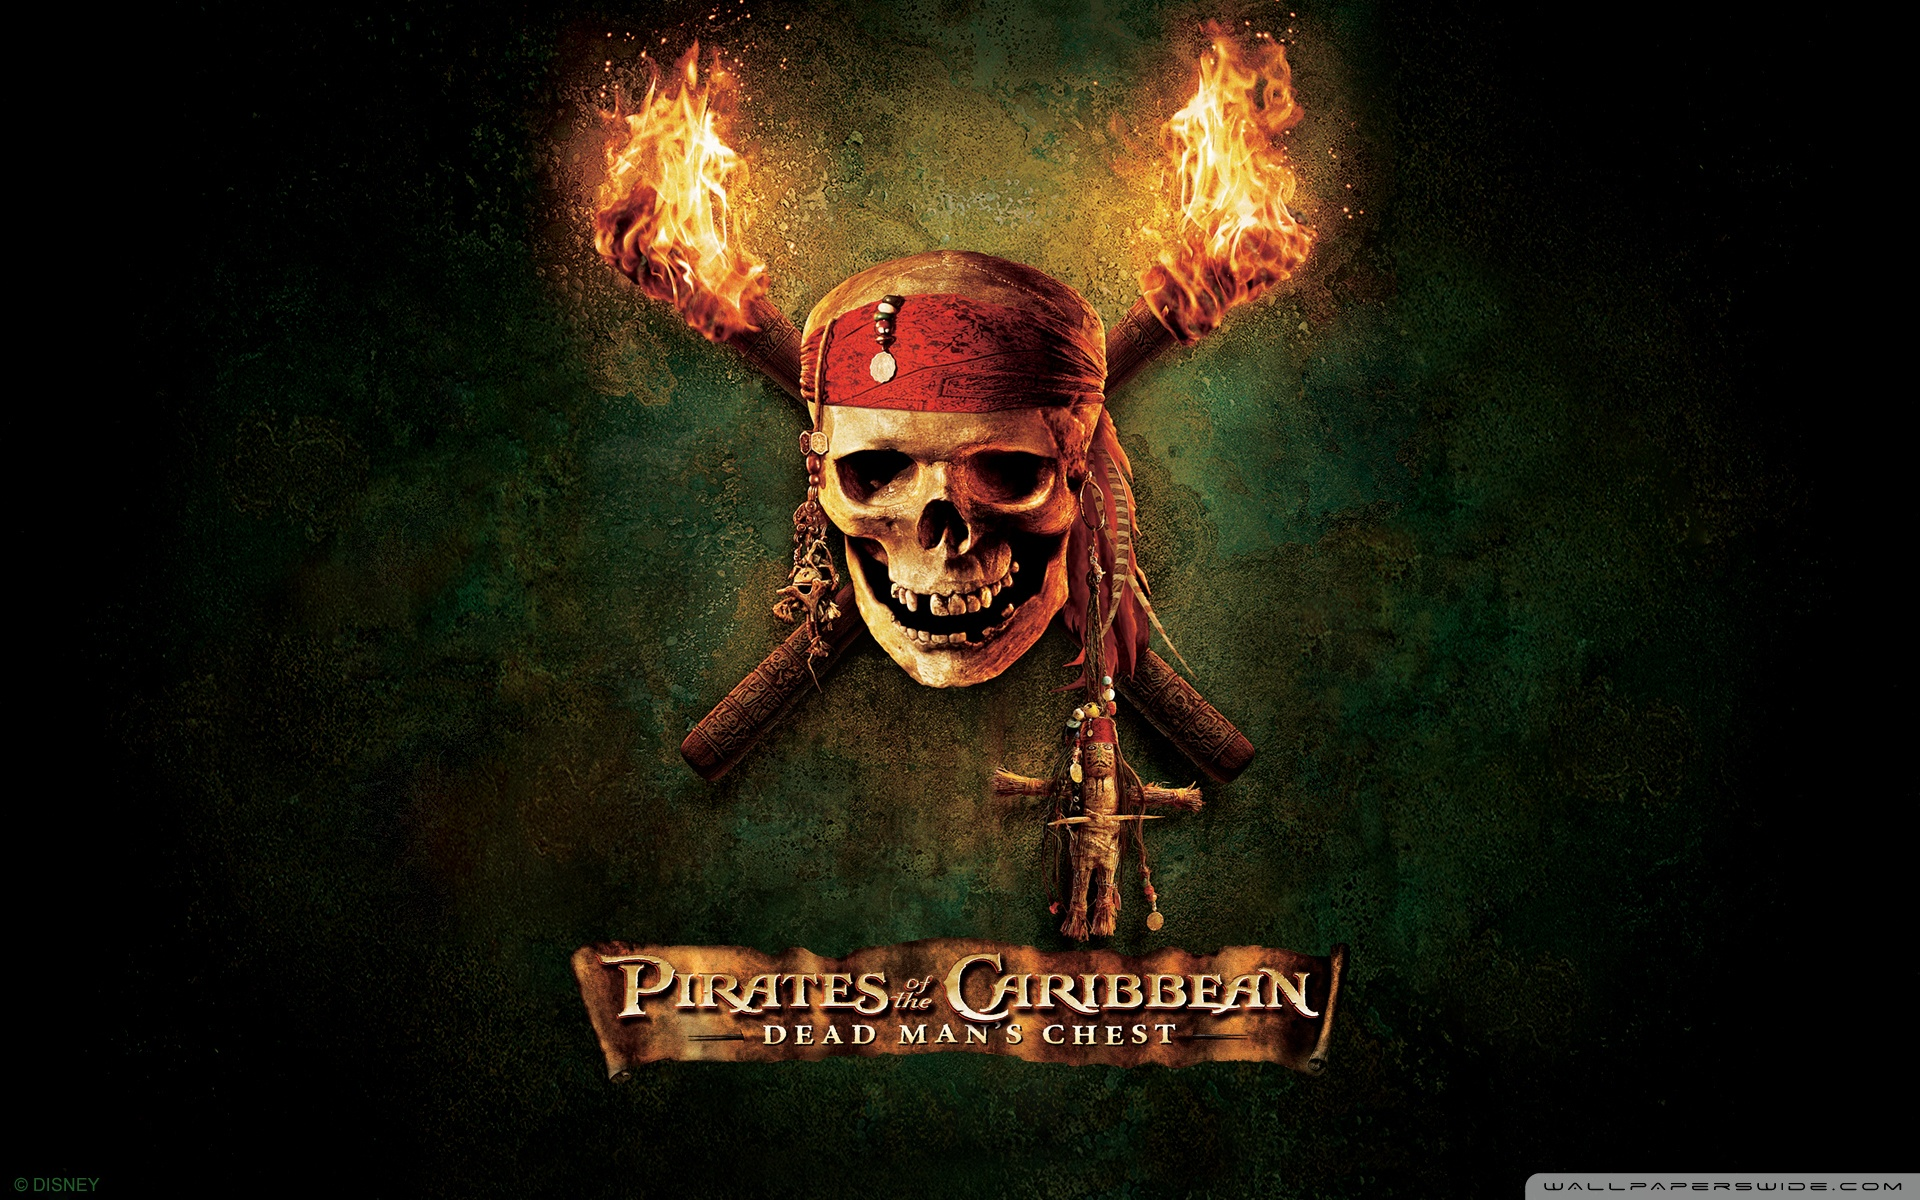 pirates_of_the_caribbean_2006_dead_mans_chest-wallpaper-1920x1200.jpg